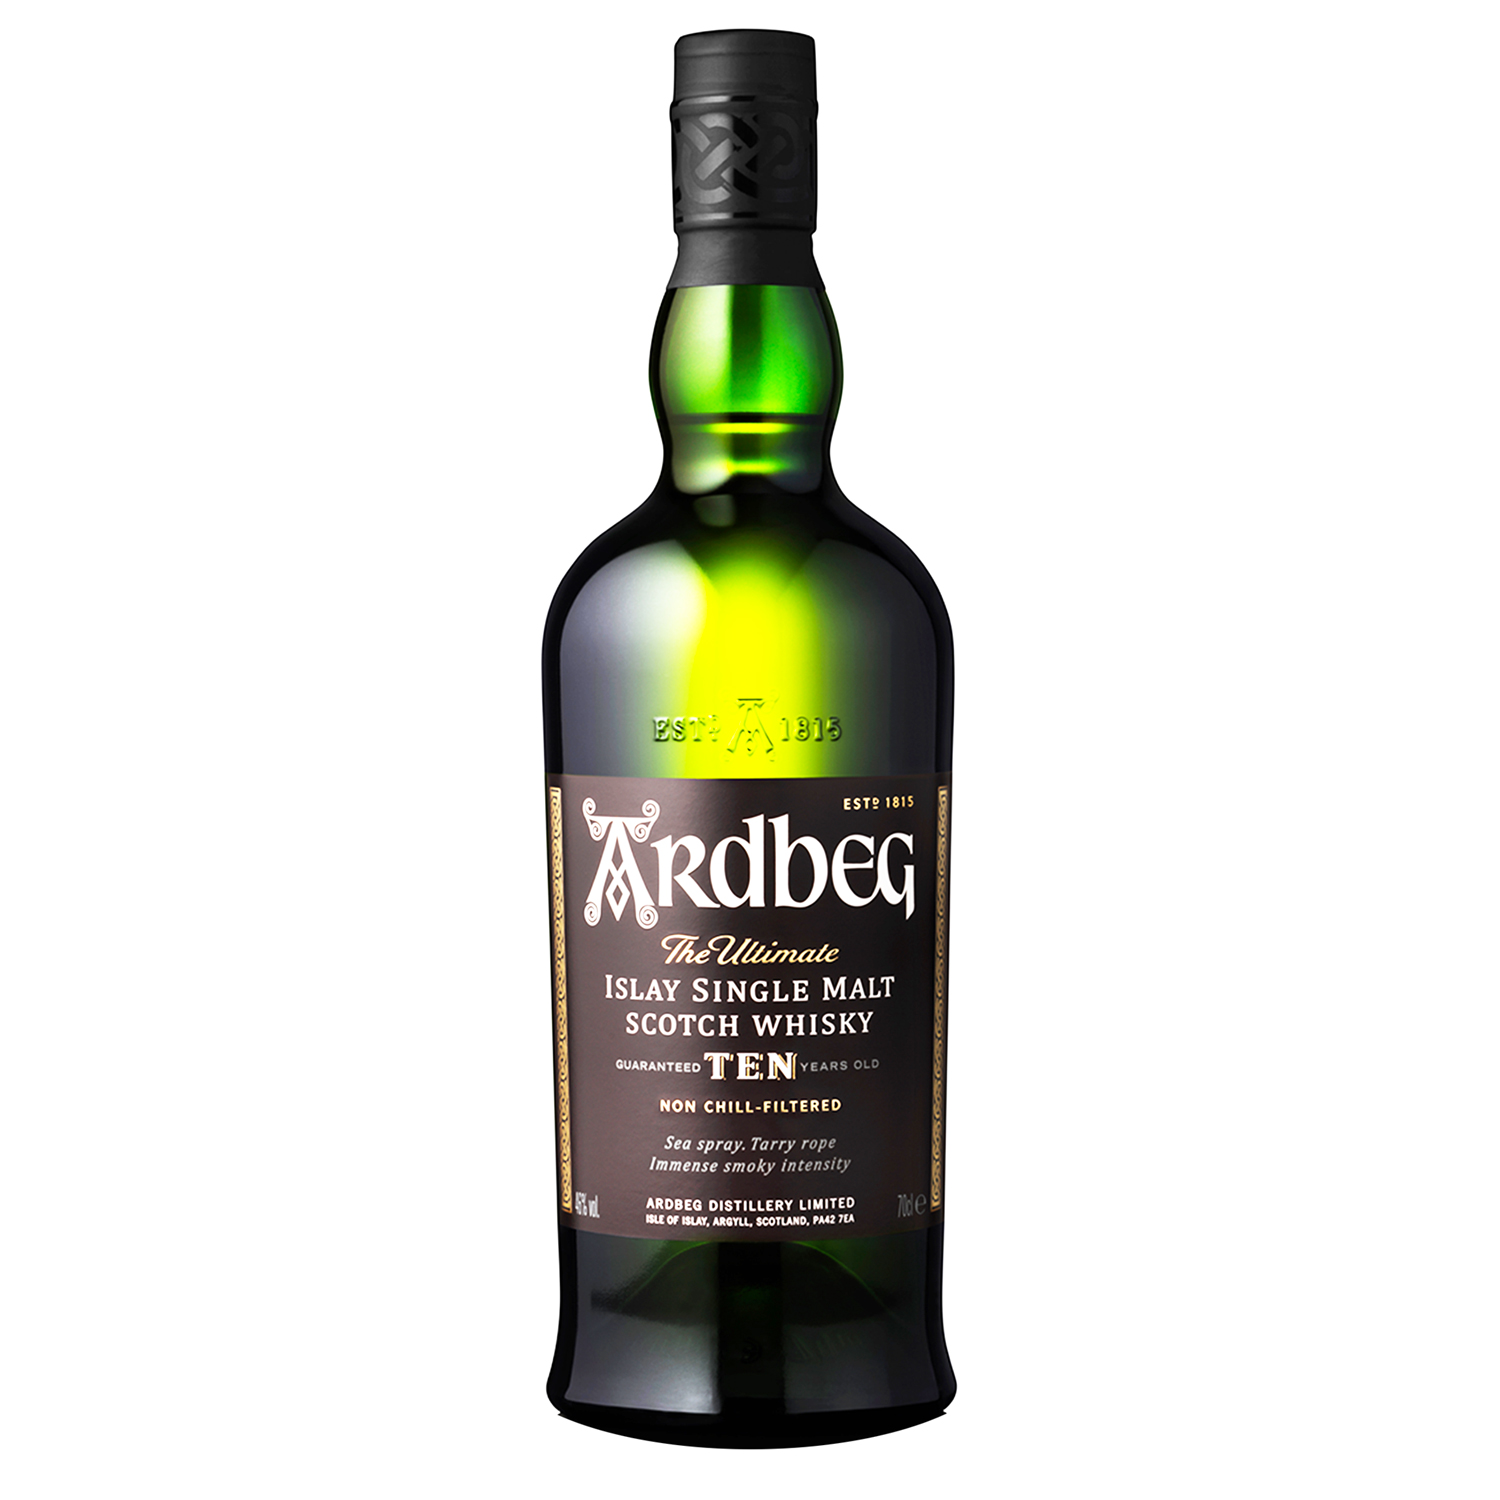 Whisky - Ardbeg 10 Years - Ecosse - Single Malt - Très Tourbé - 70cl - 46°